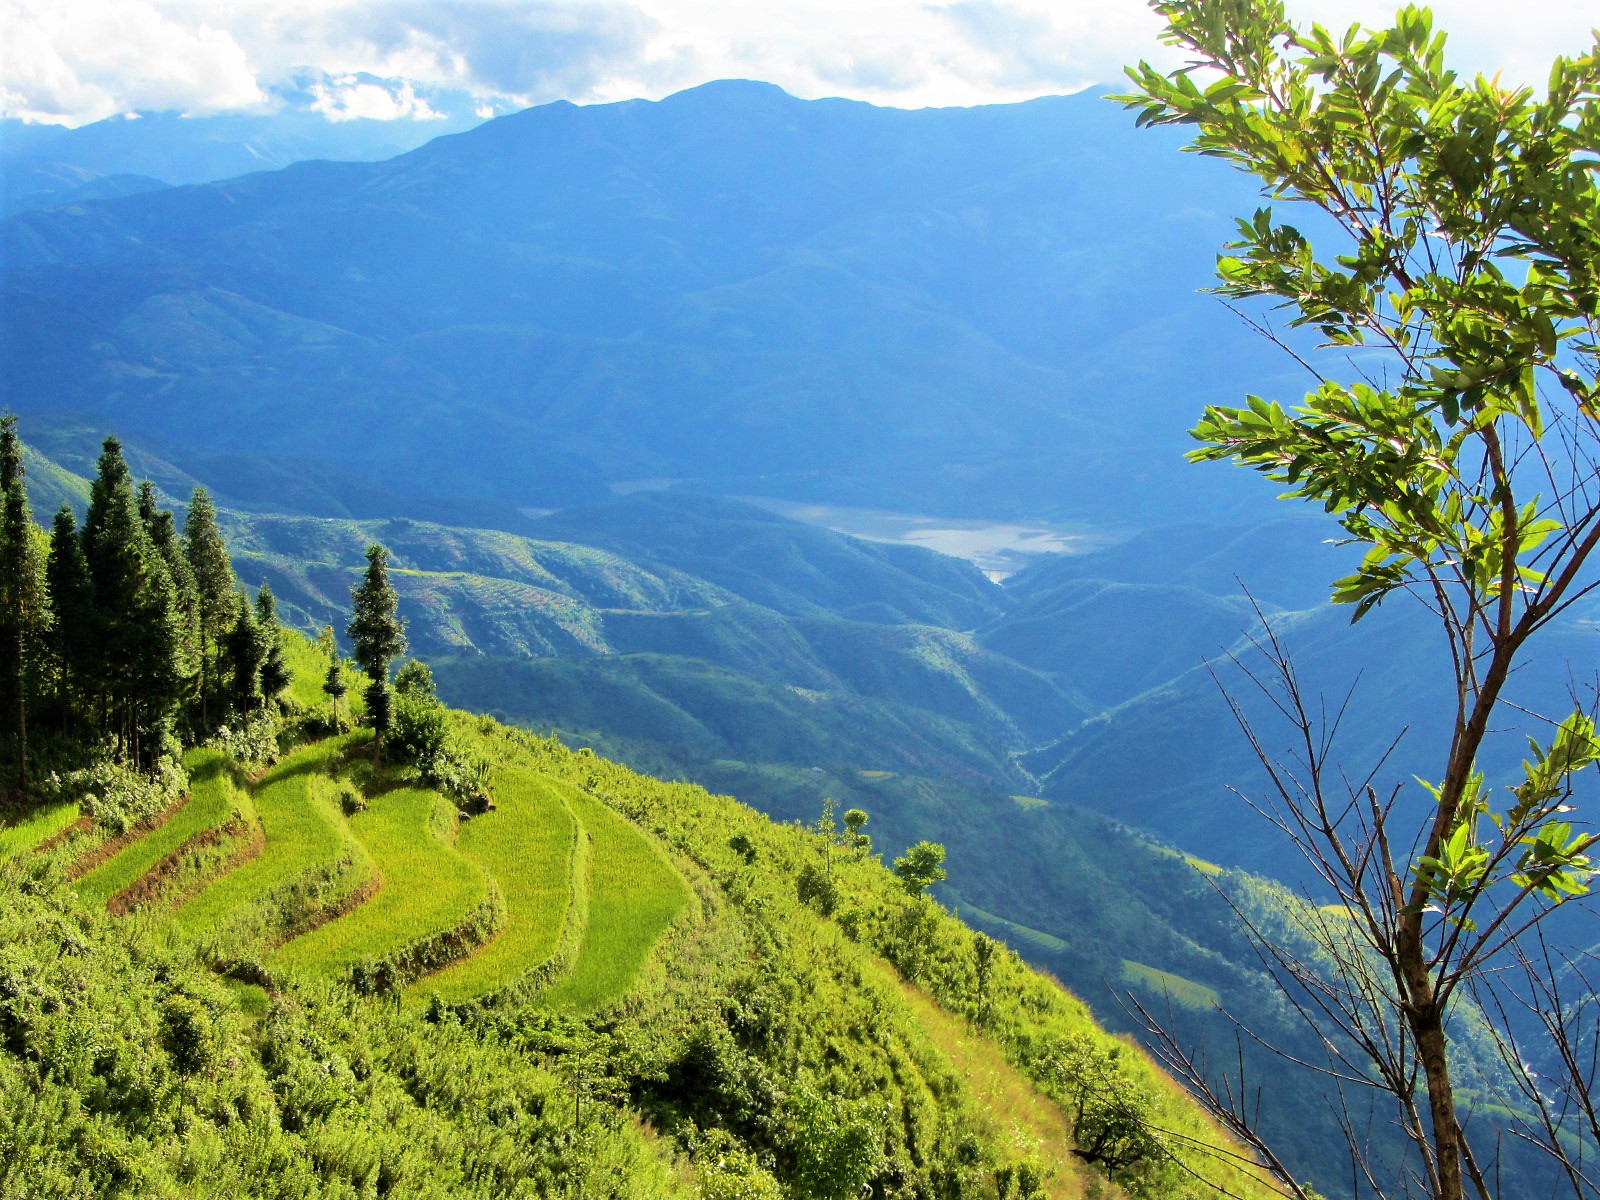 Majestic northern landscapes in spring weather, Vietnam